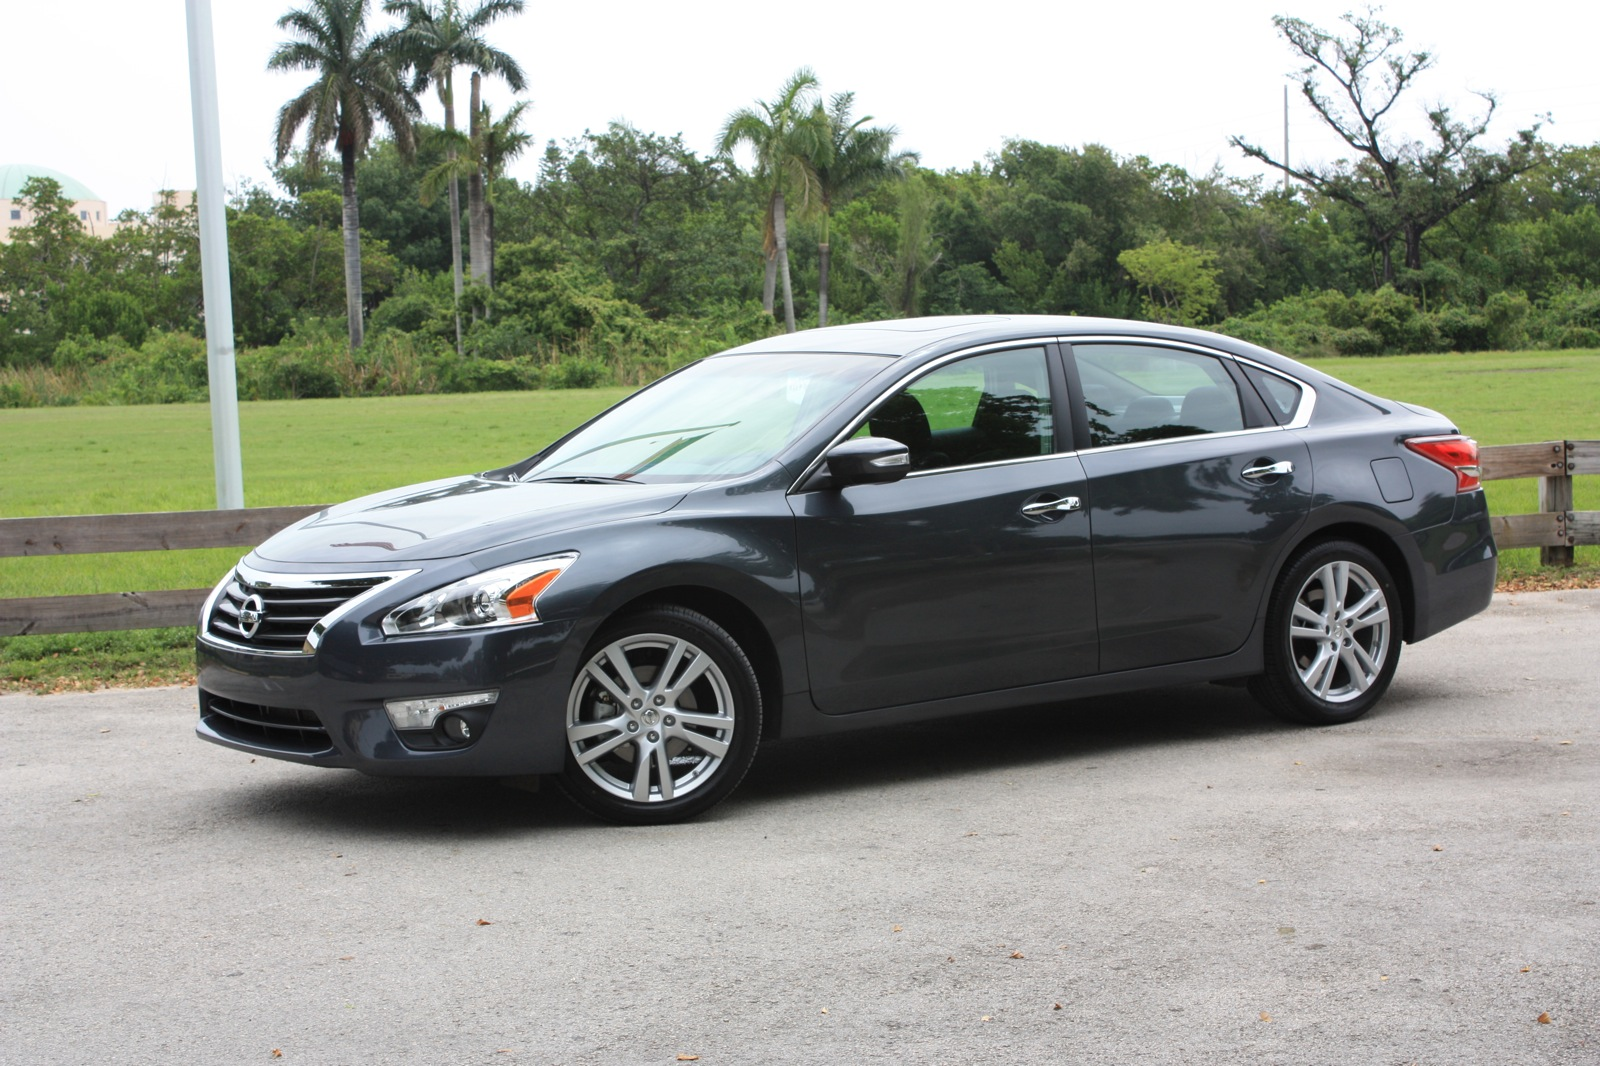 2013 nissan altima the most fuel efficient mid size car. Black Bedroom Furniture Sets. Home Design Ideas